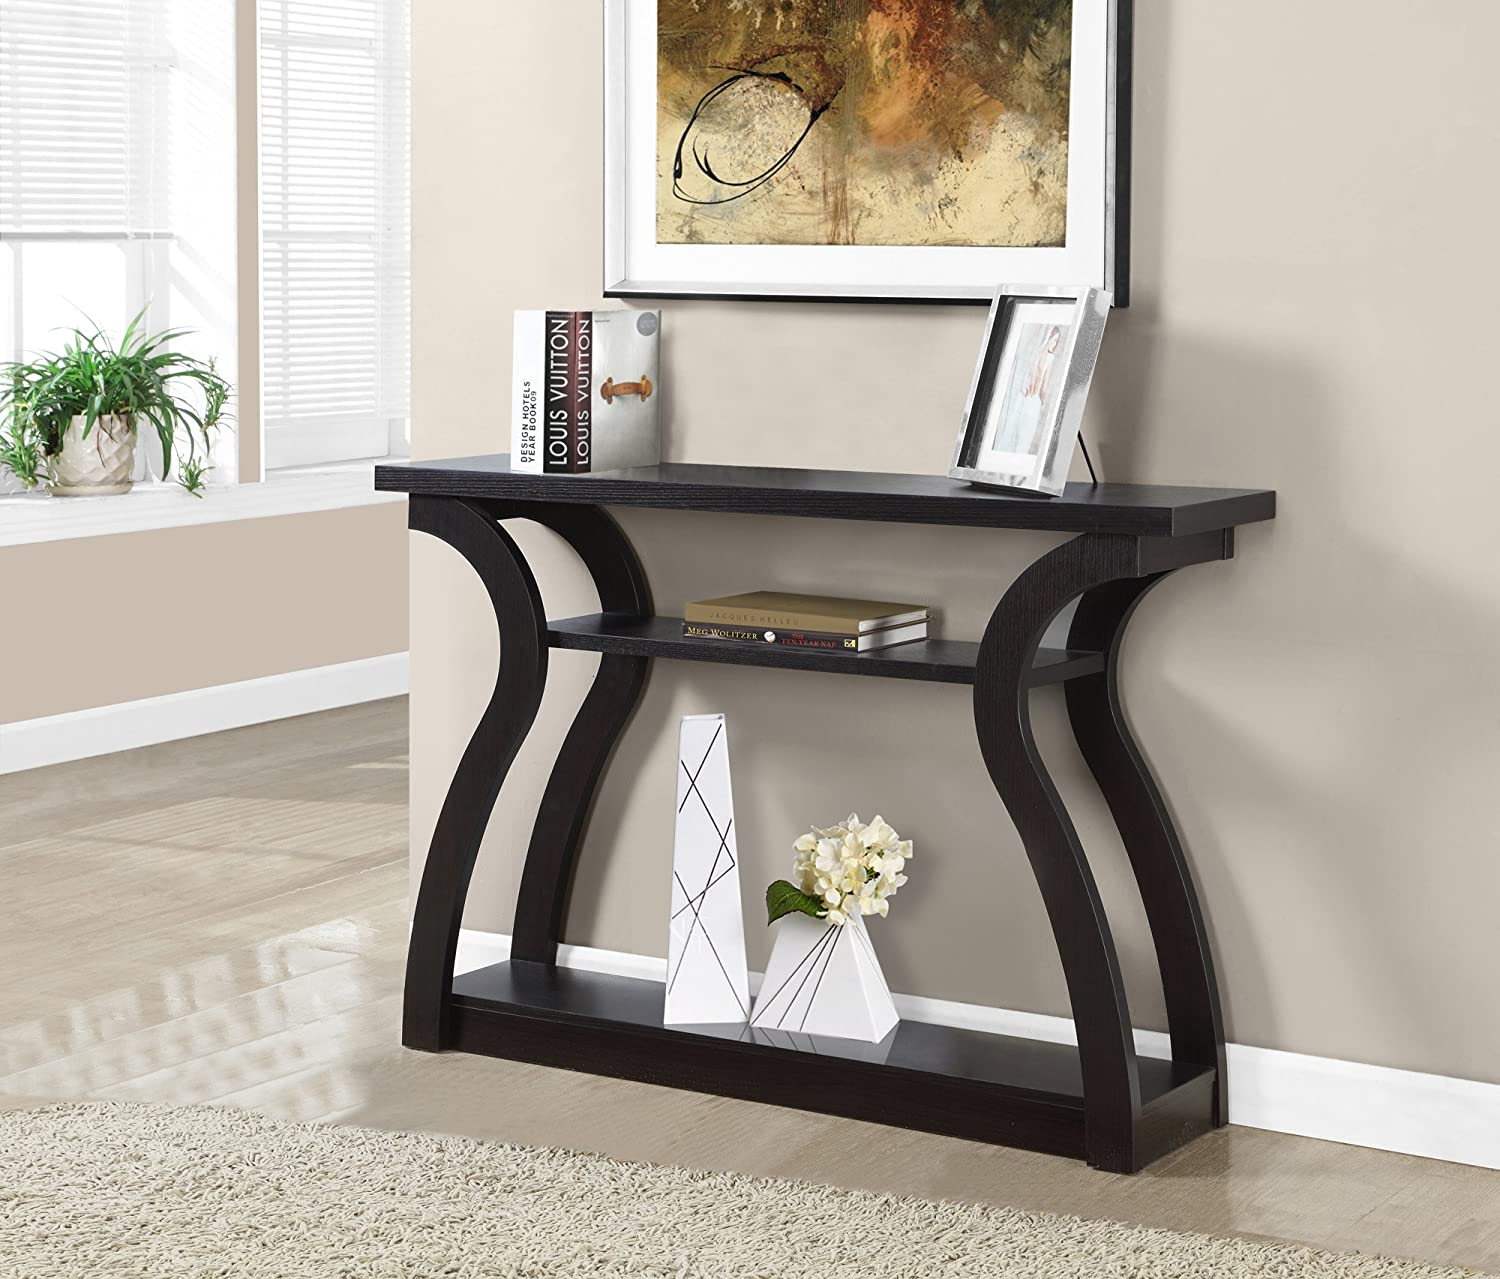 Monarch Specialties I 2445, Hall Console, Accent Table, Cappuccino